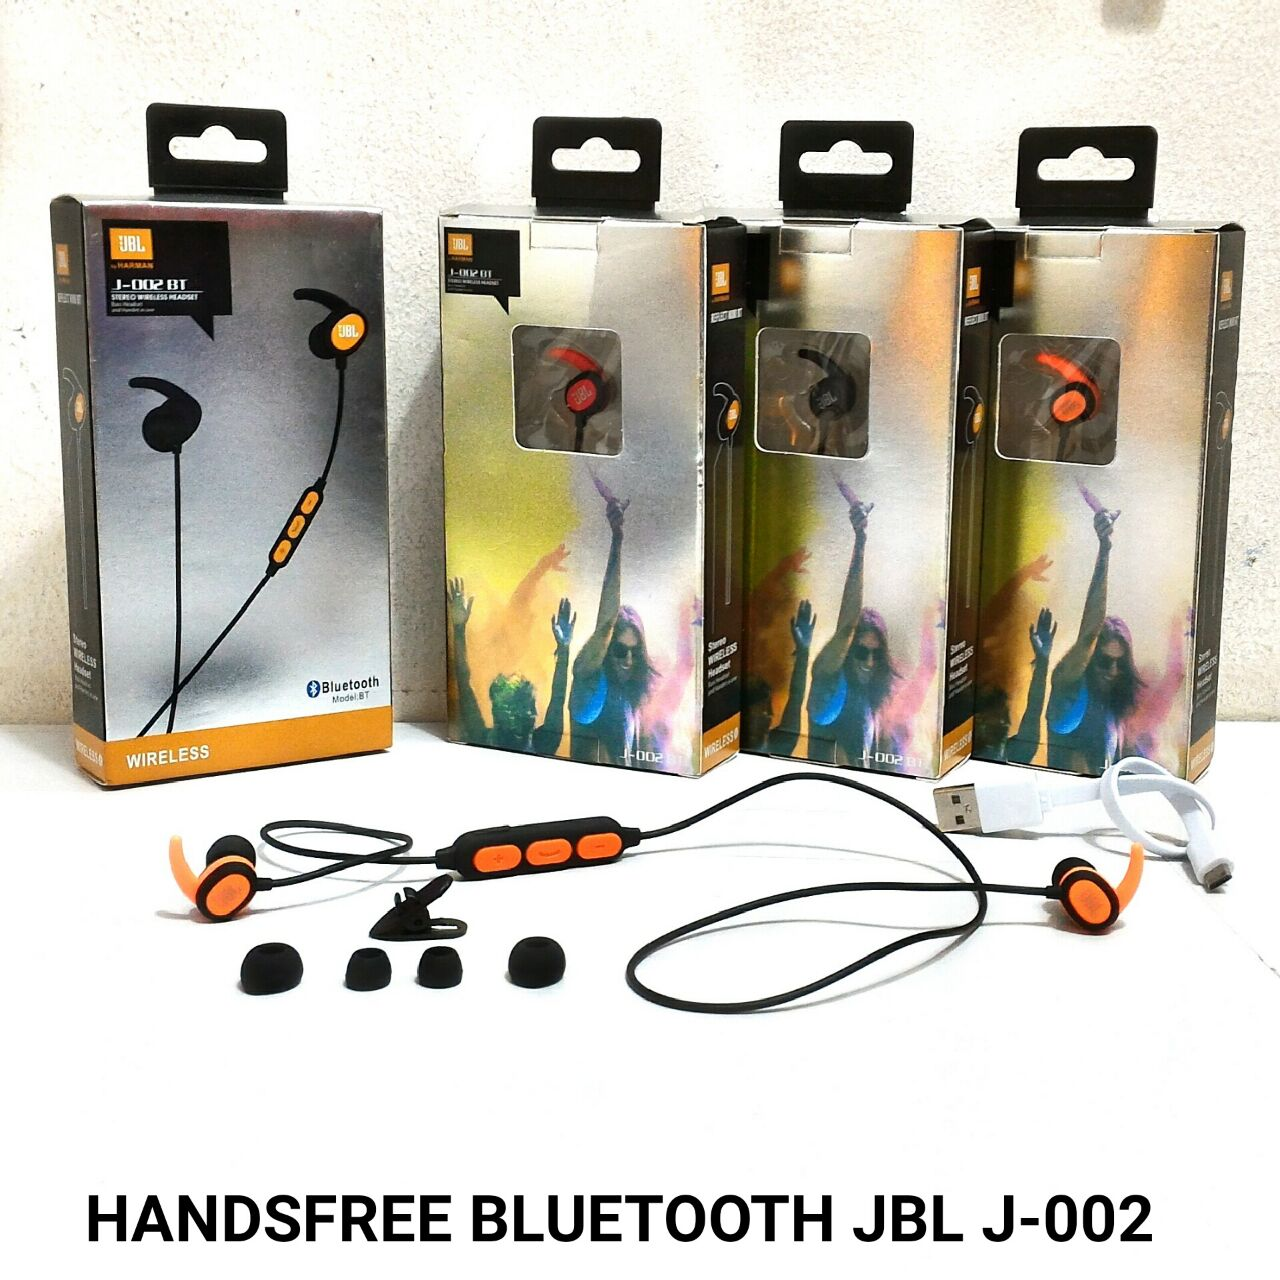 Handsfree Bluetooth JBL J-002